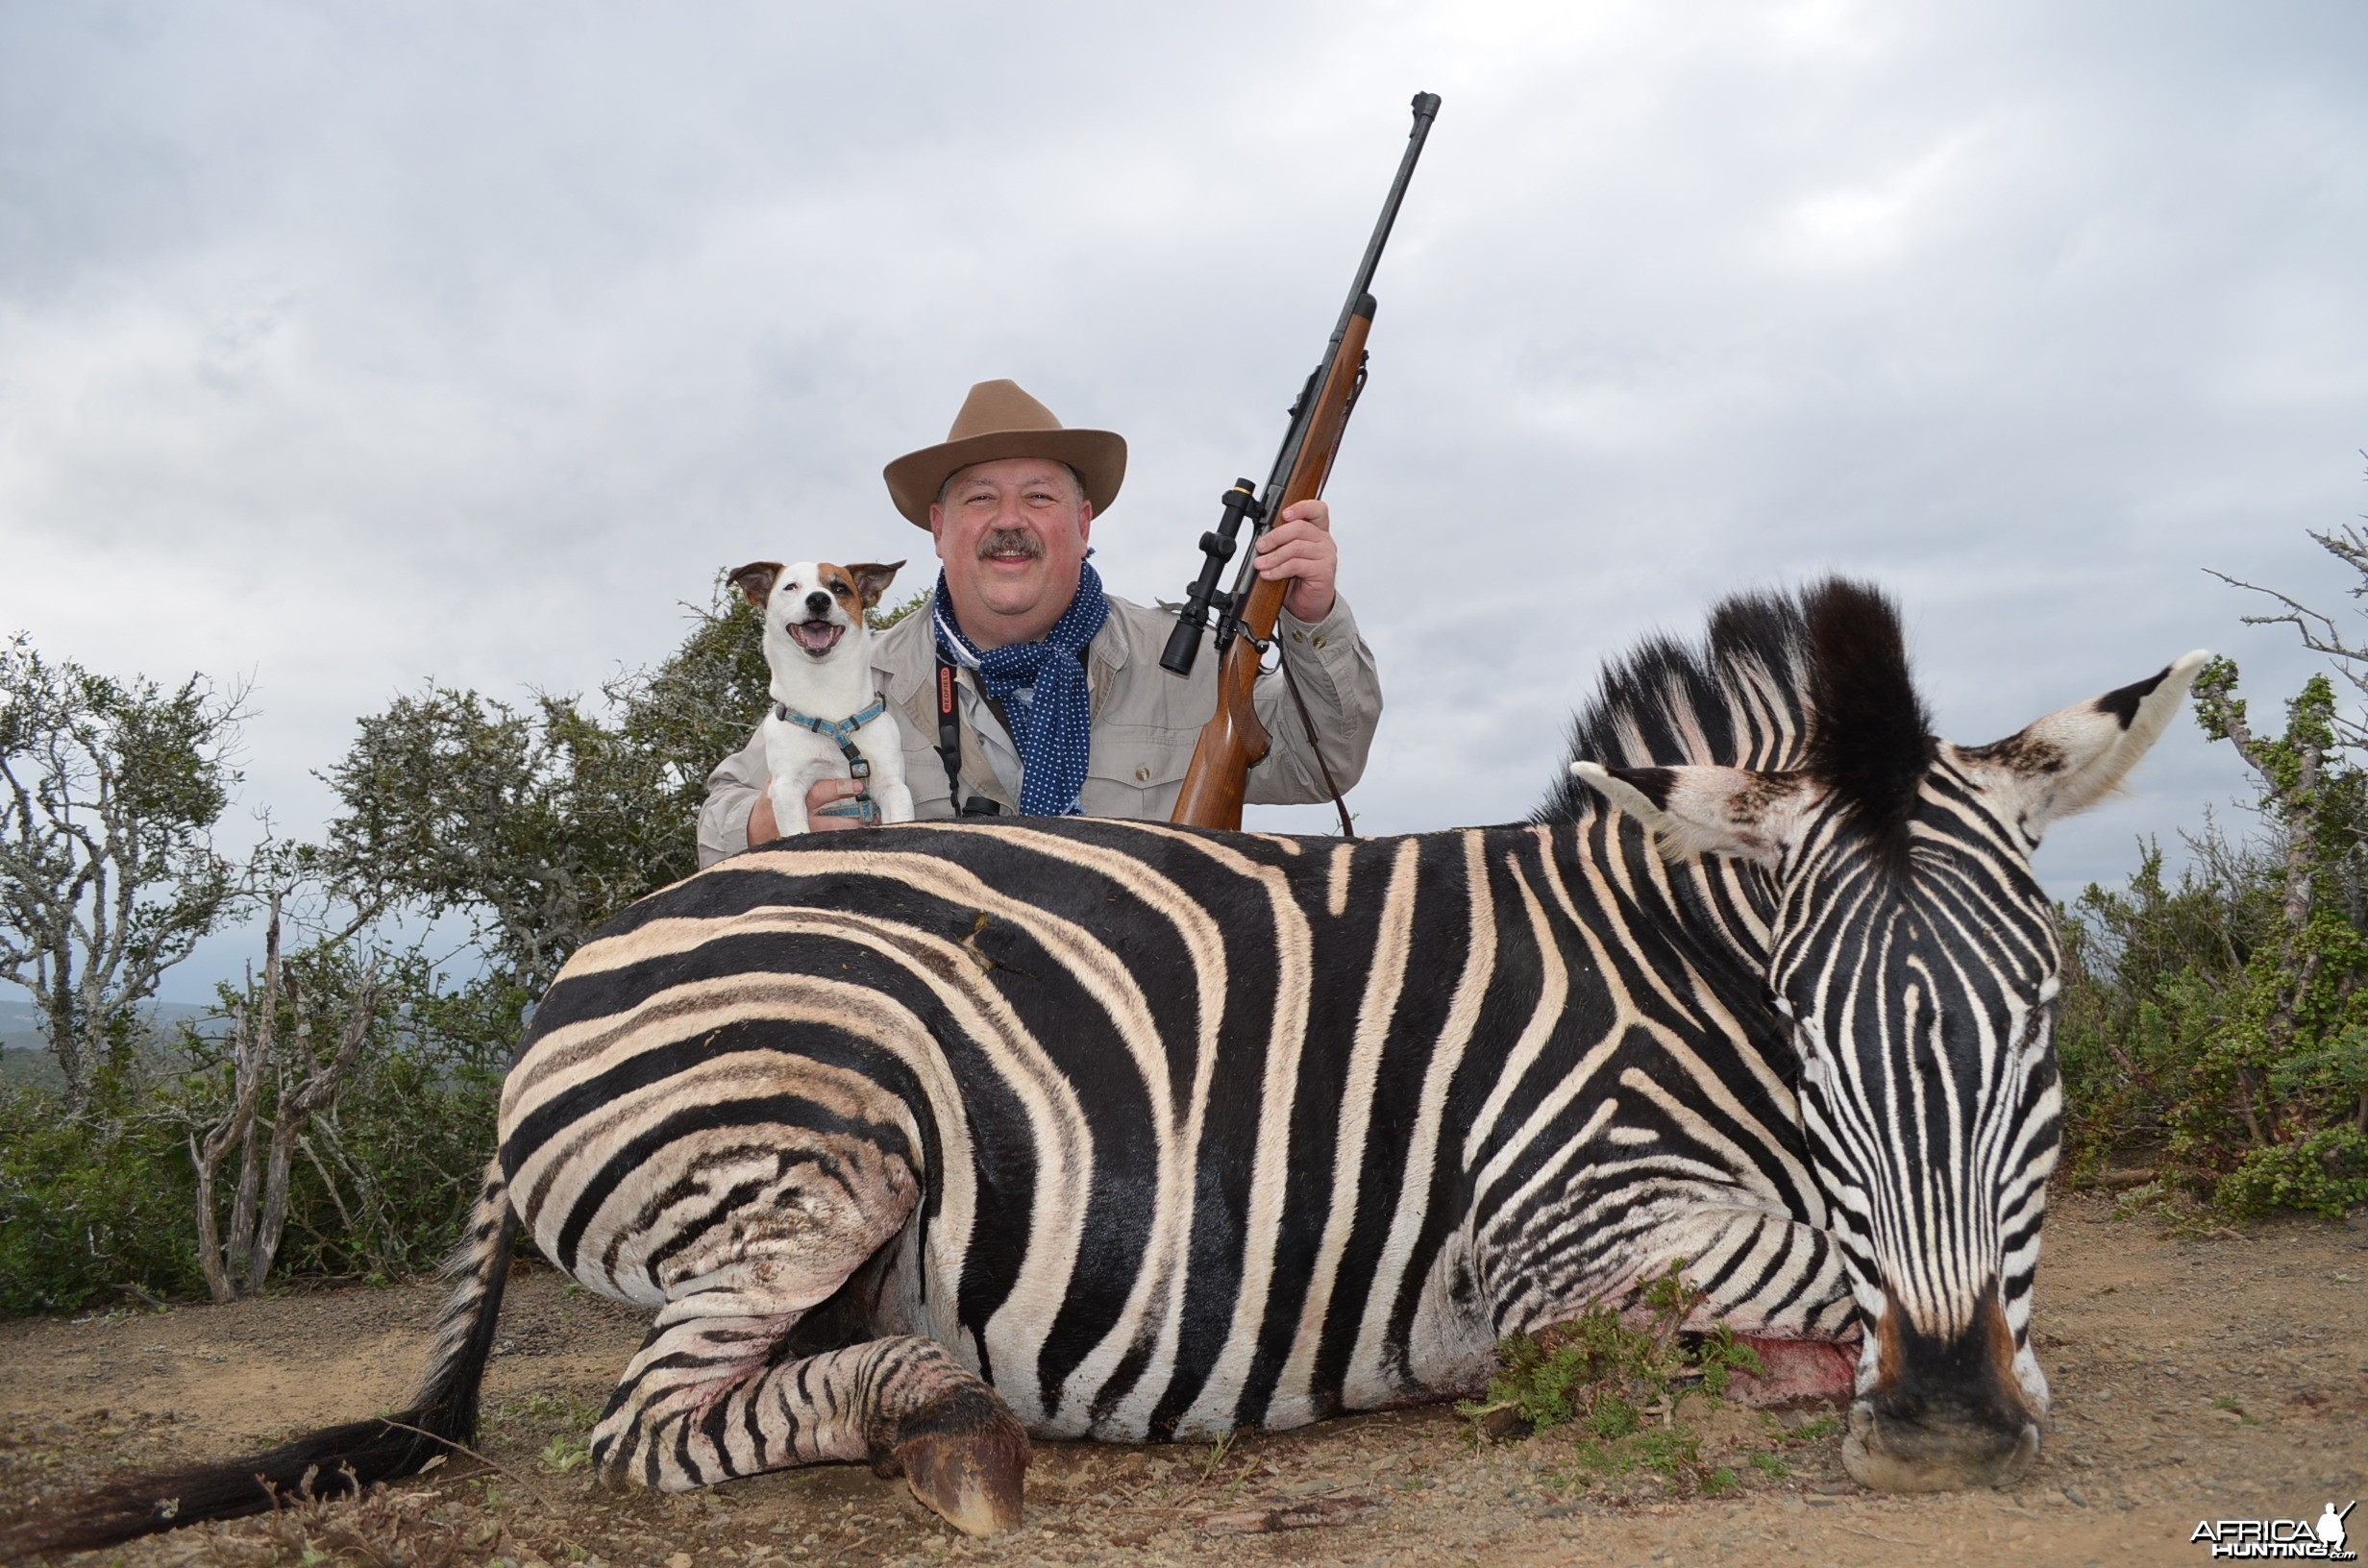 Zebra KMG Hunting Safaris